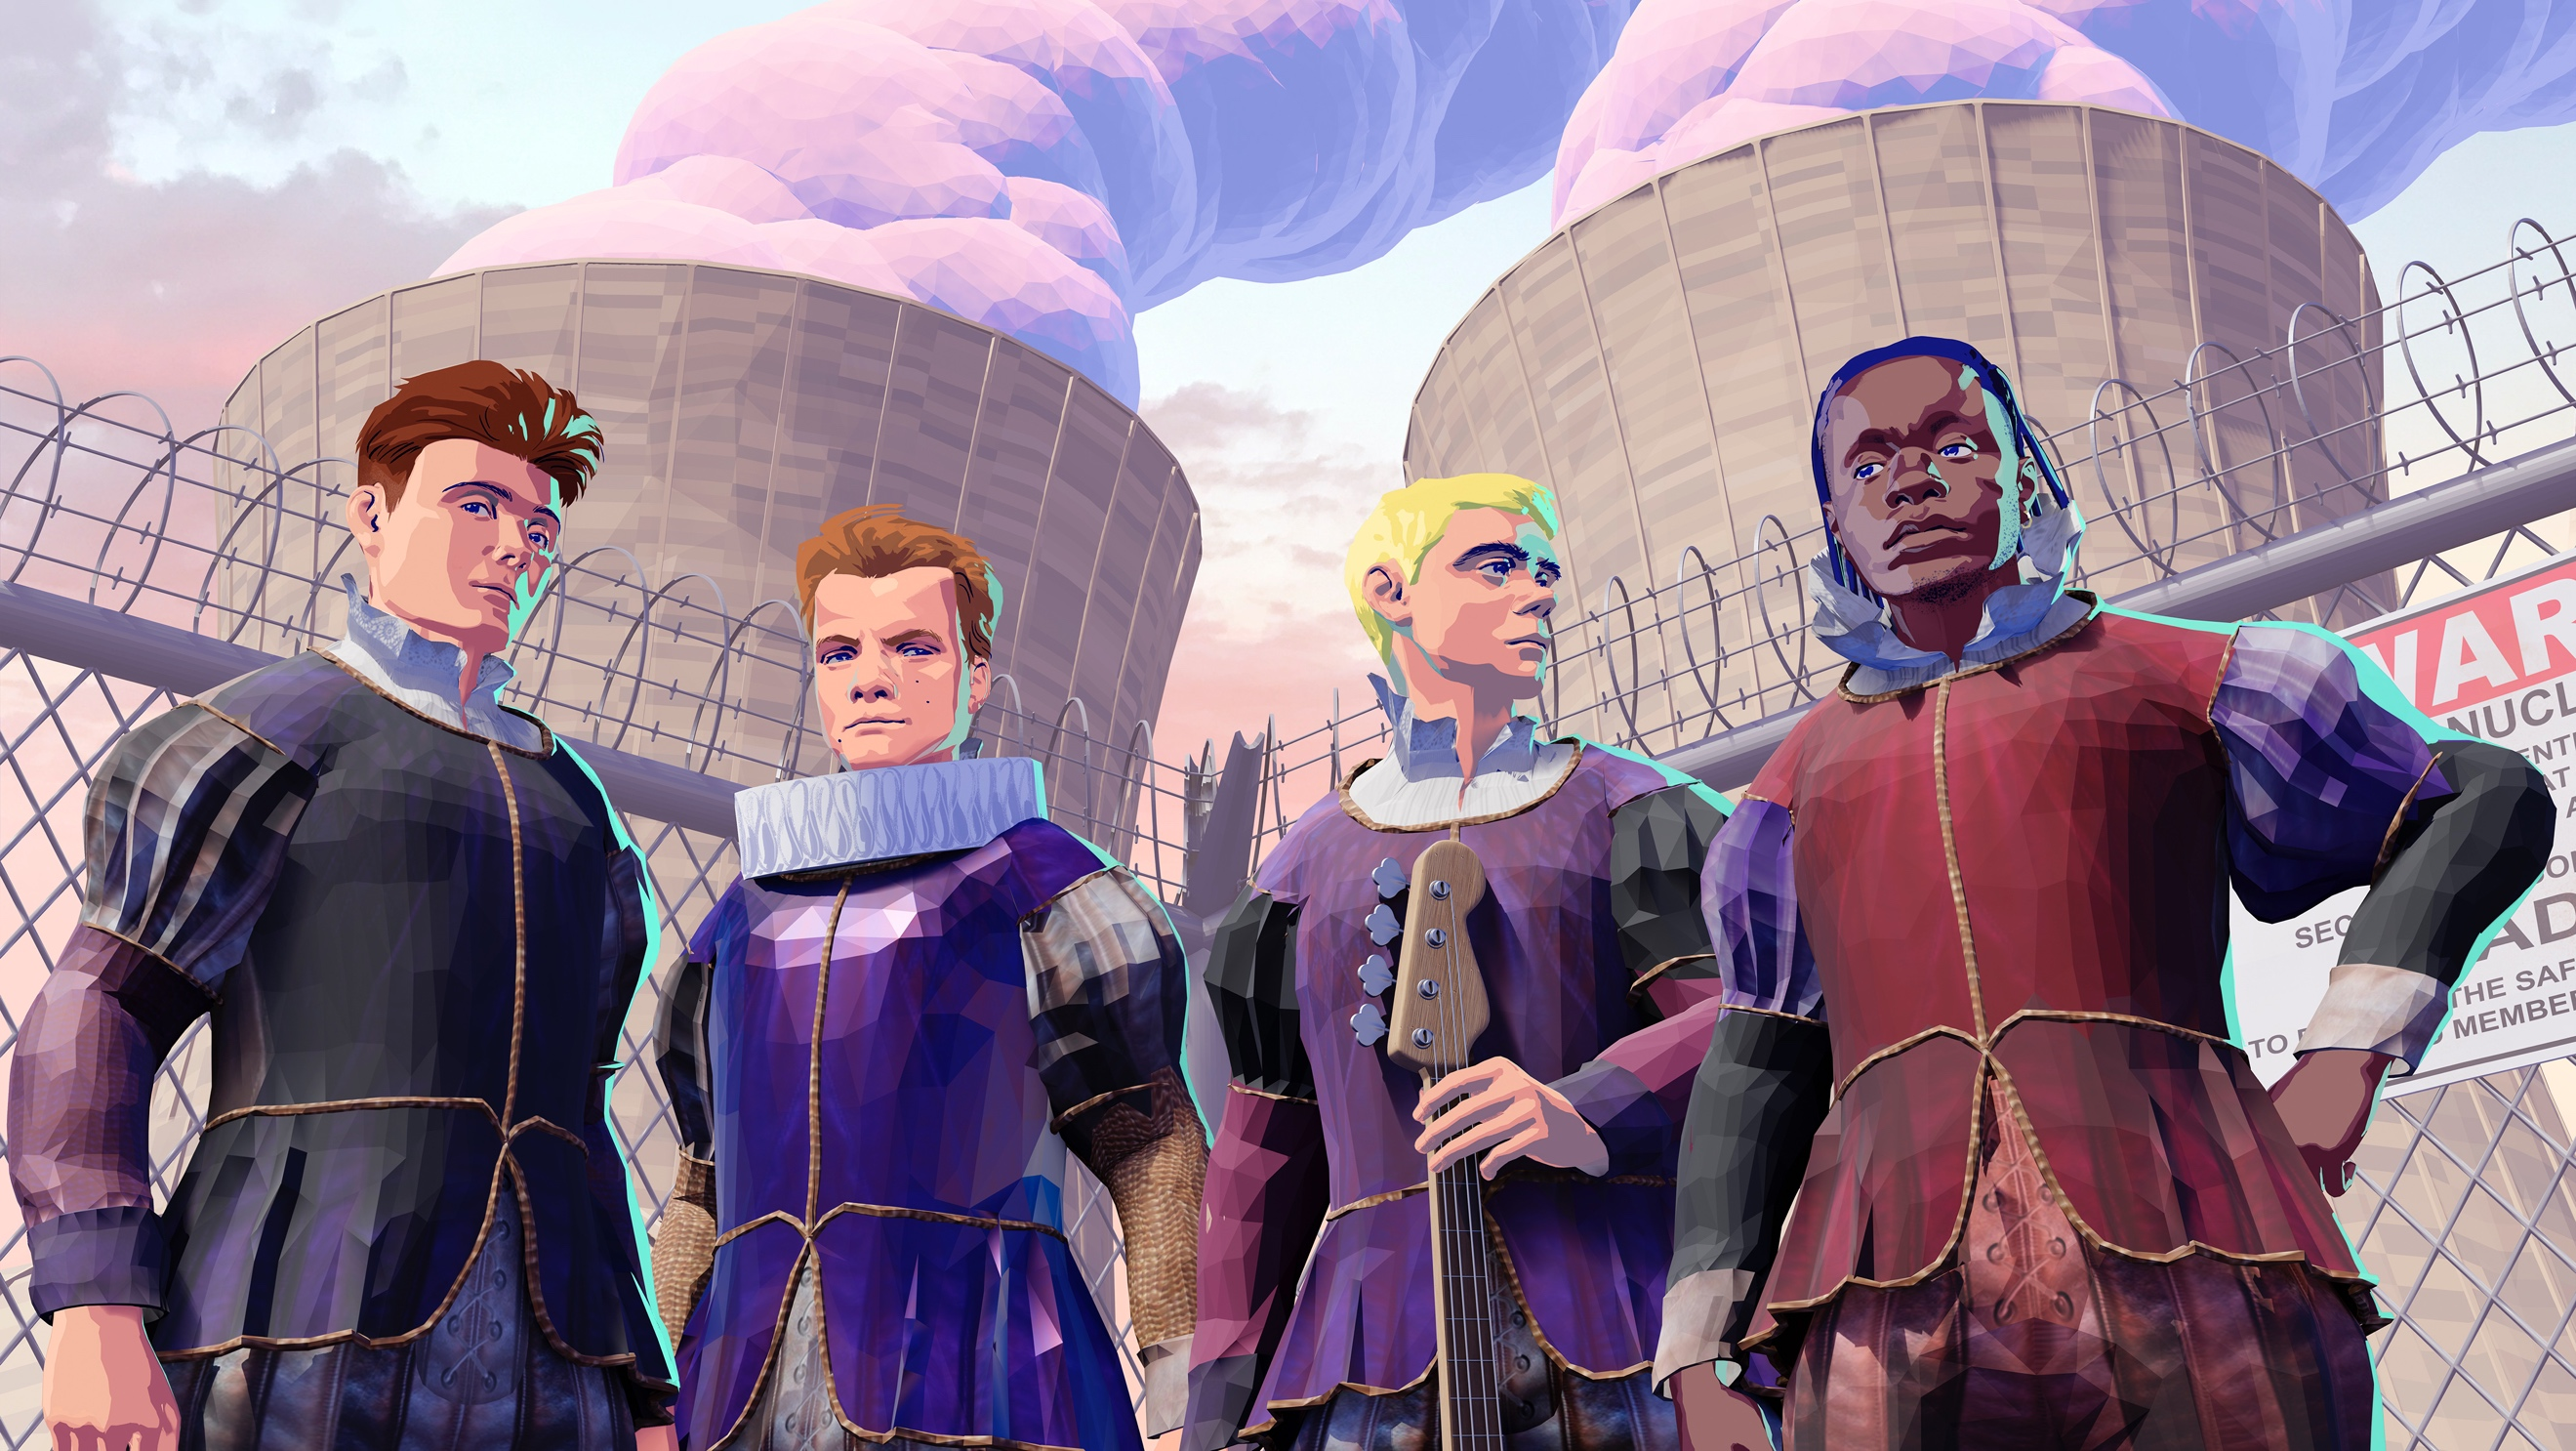 Black Midi announce Dublin date at Vicar Street